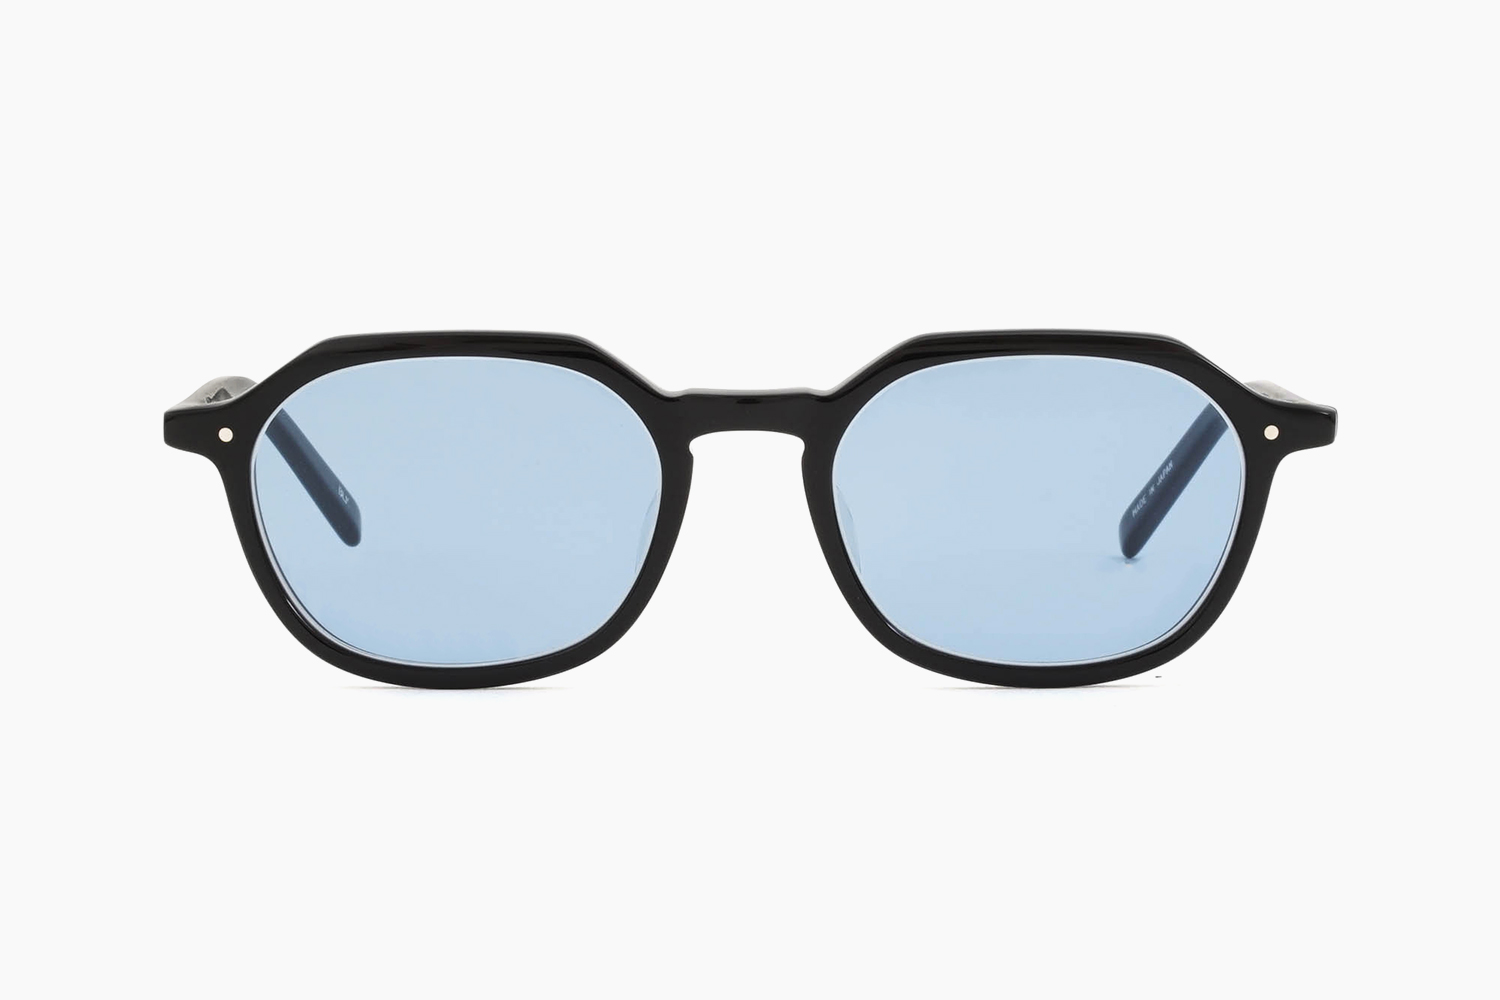 A/a-CRS SG - BLK|SUNGLASSES COLLECTION - 21SS